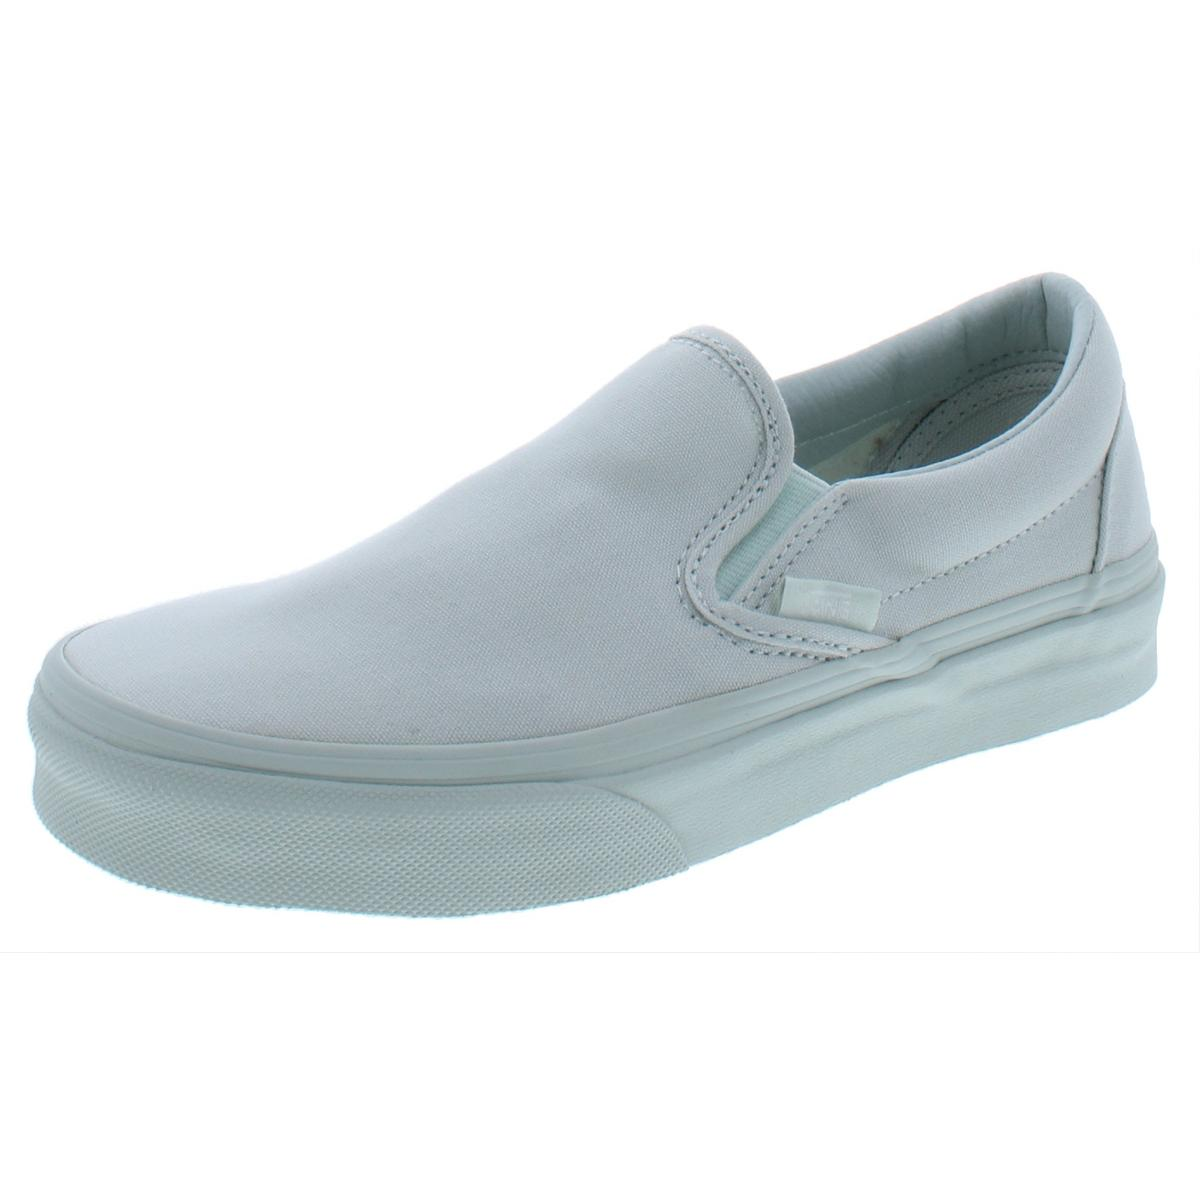 Canvas Comfort Loafers Shoes BHFO 7898